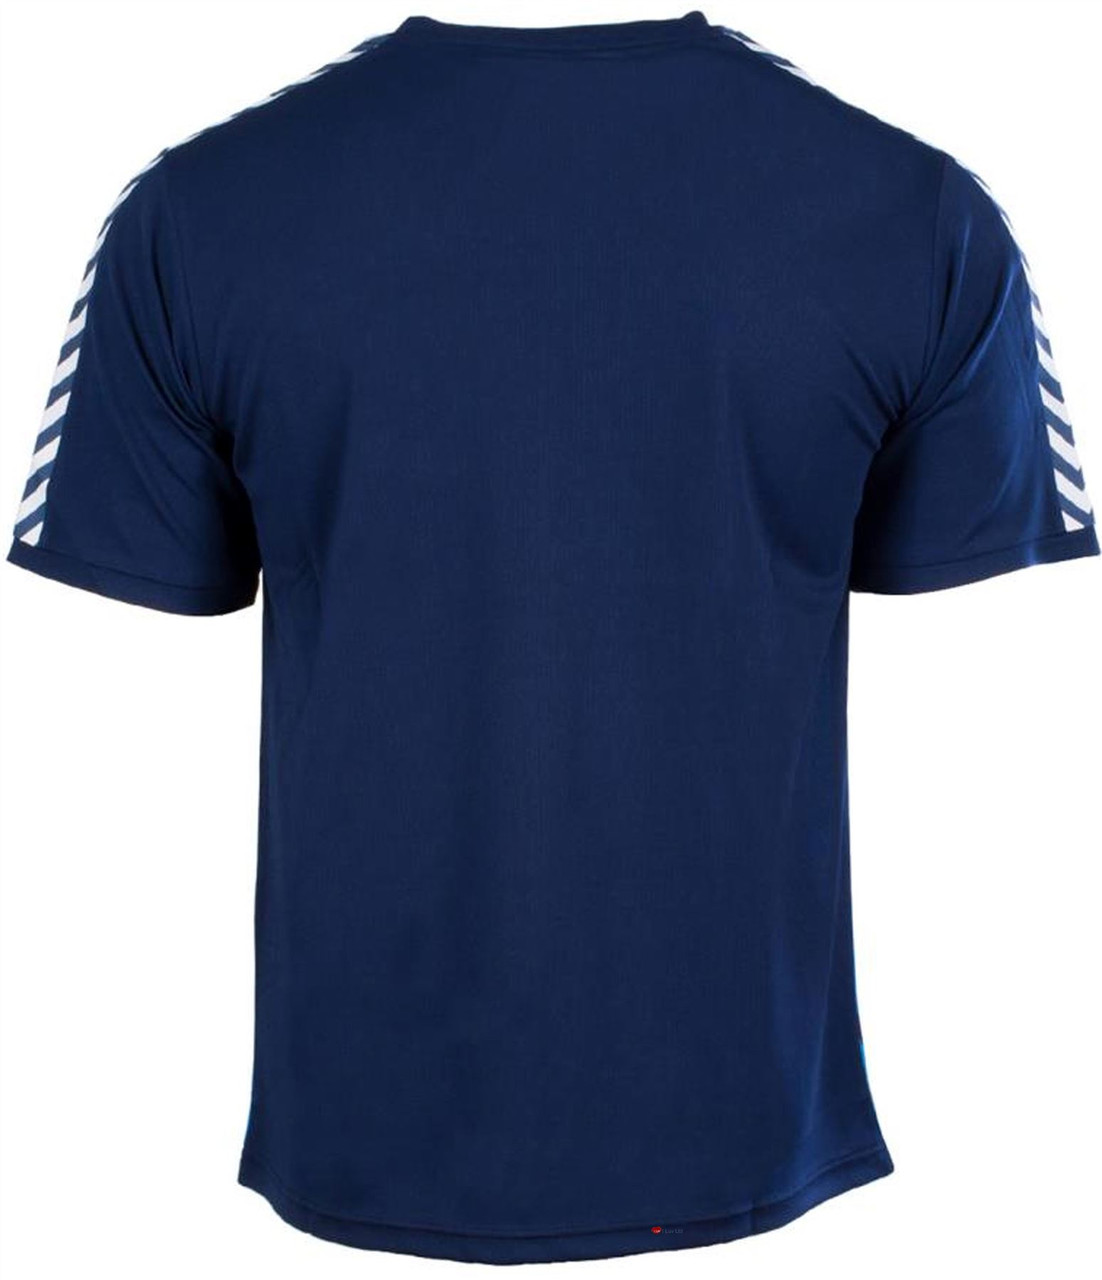 5ab30c2f46e Men'S Striped Scotland Football Top Navy-Sky Blue - ILuvSports.co.uk